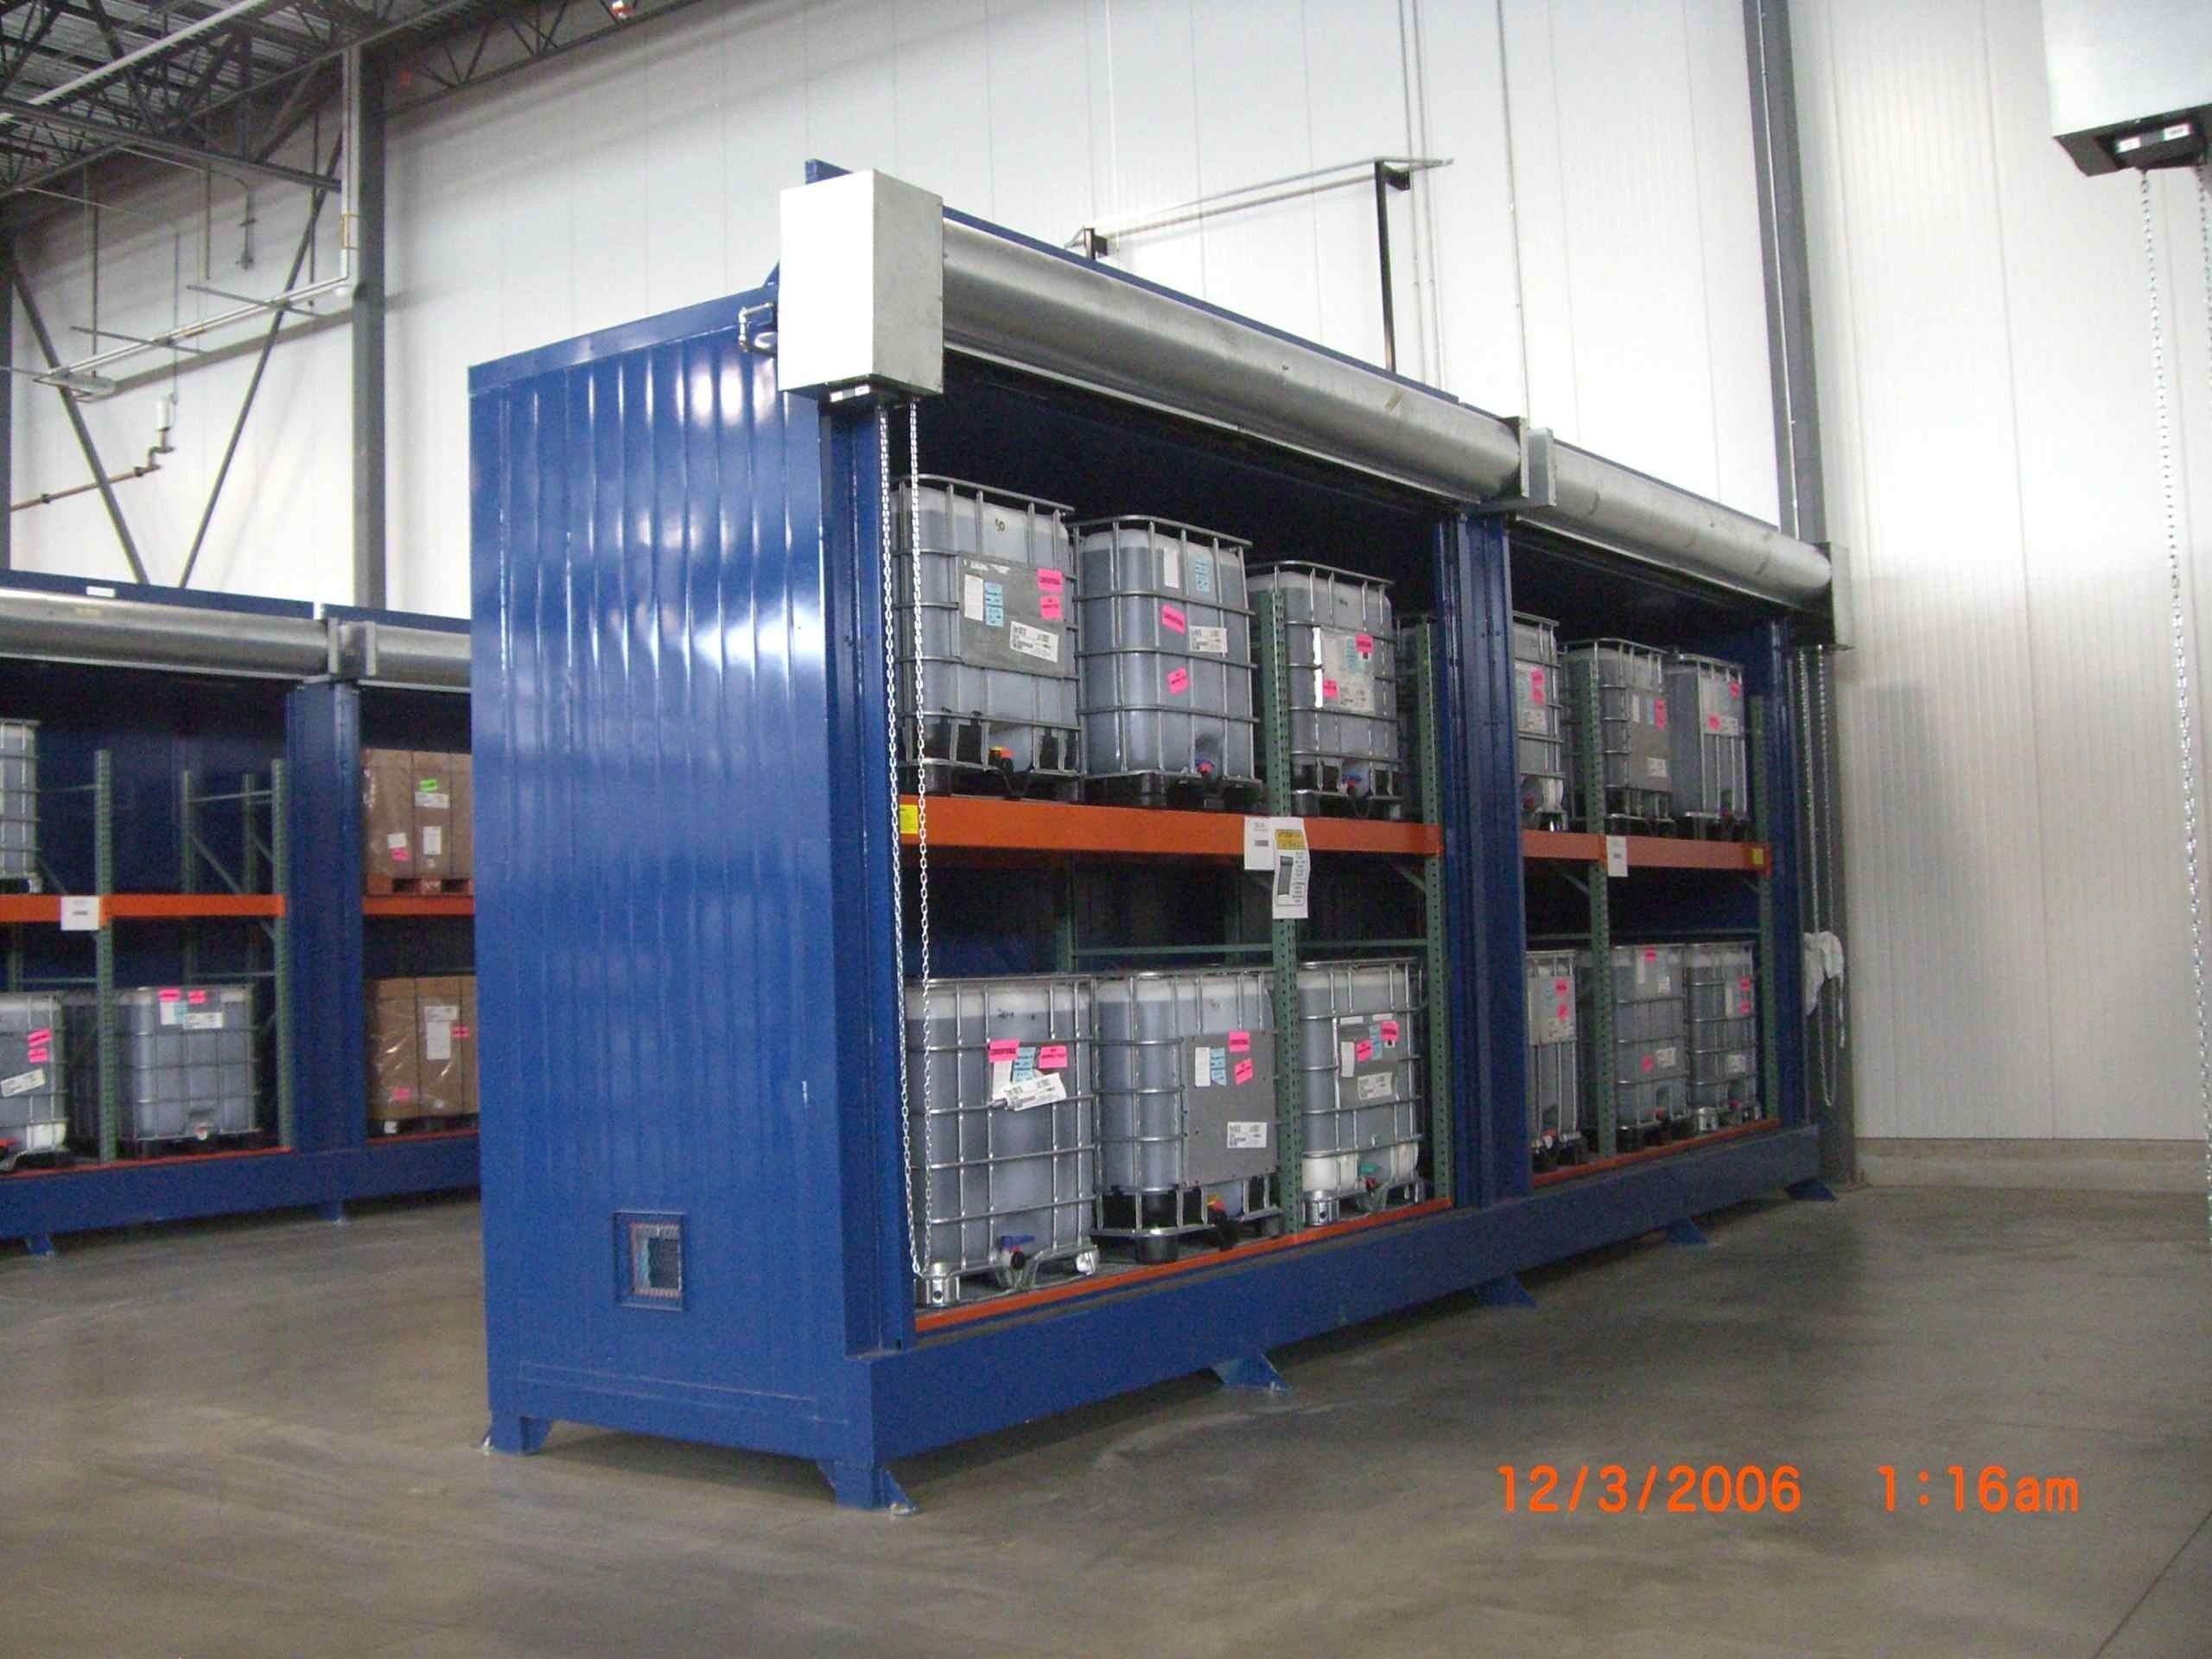 Chemical Storage Cabinets  2 Hour Fire Rated Construction   FM Approved.  Choose Between Single